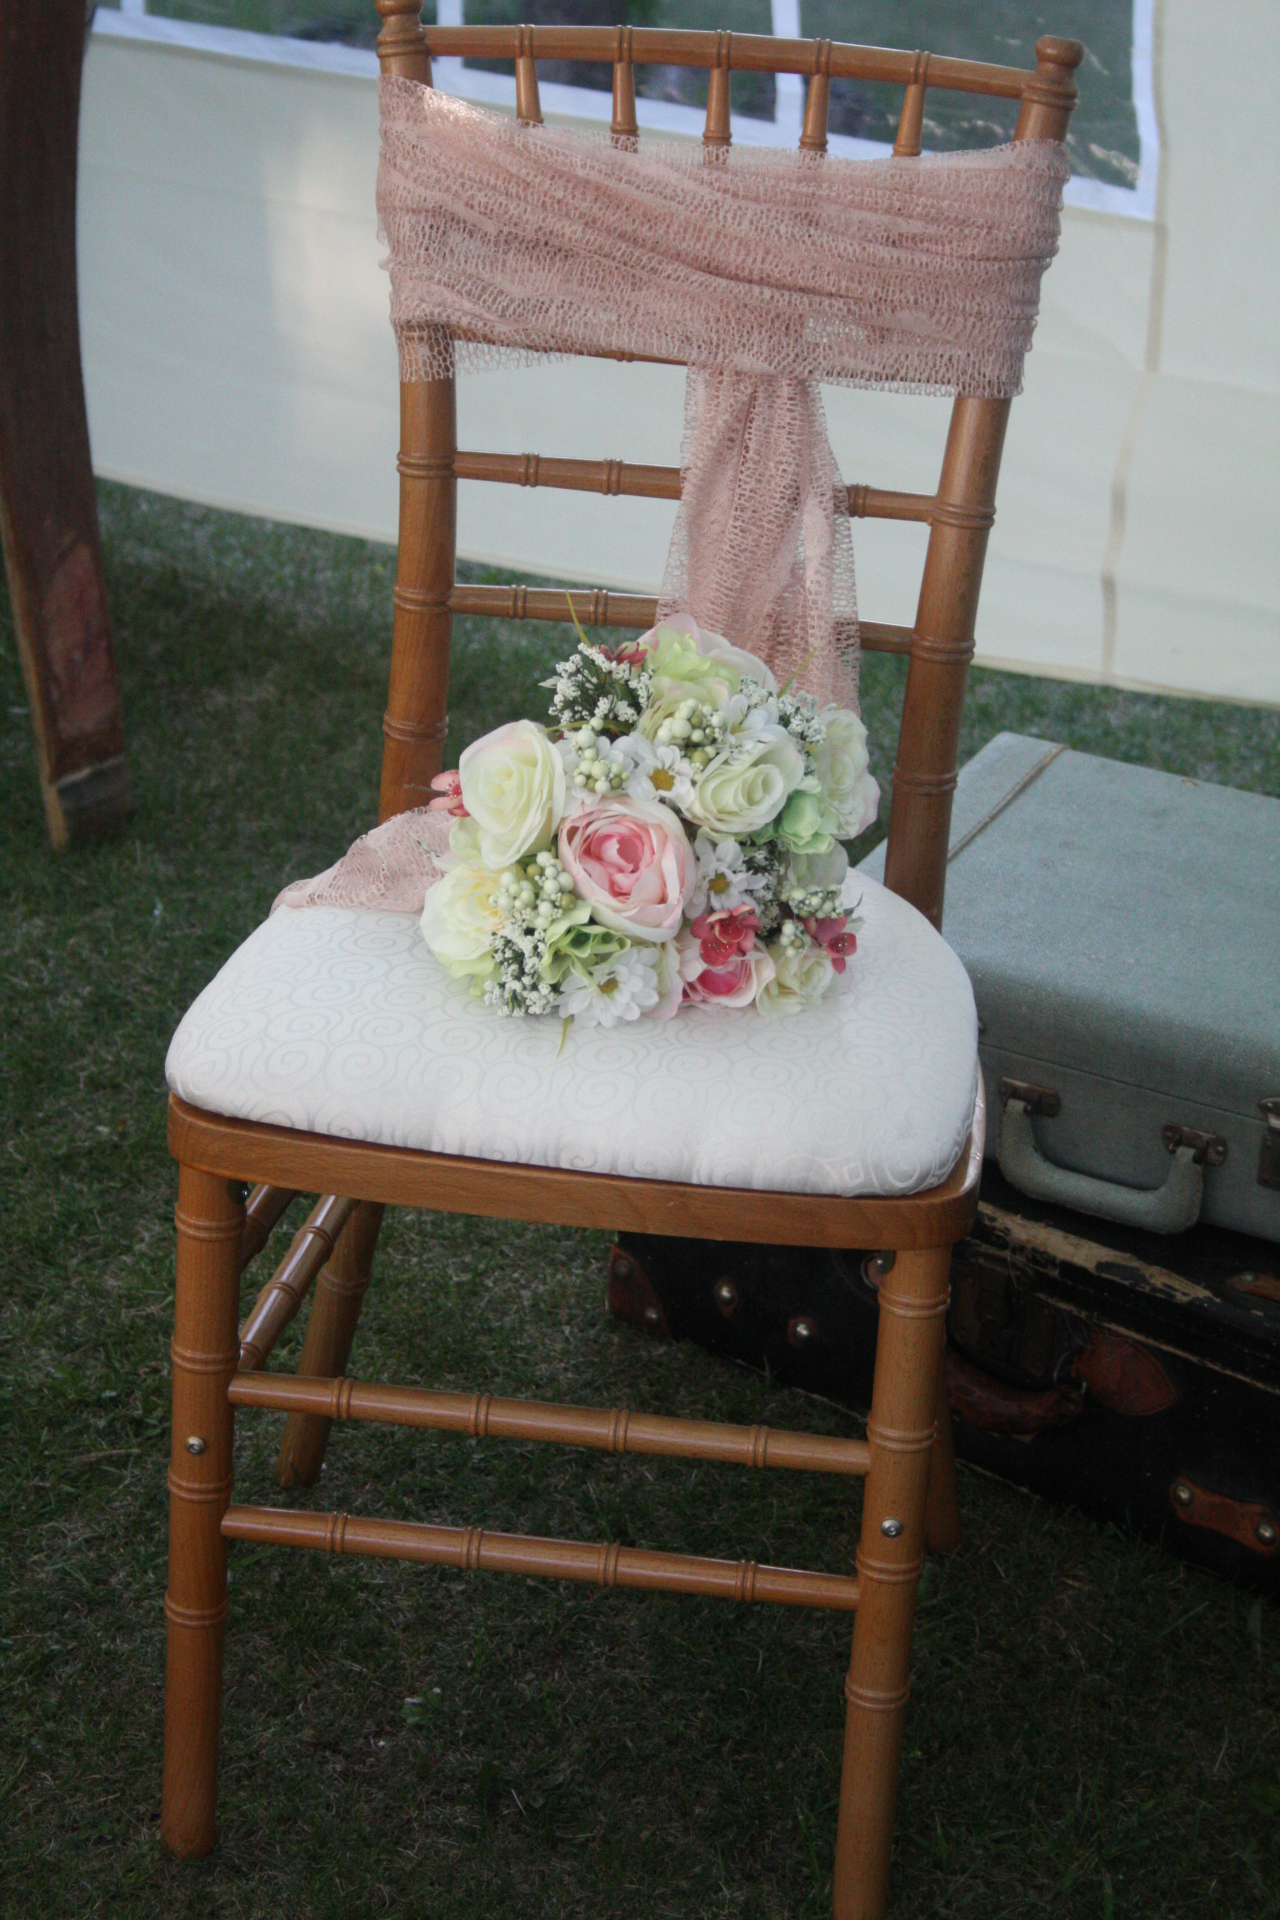 Stagecoach has natural chiavari chairs available for rent